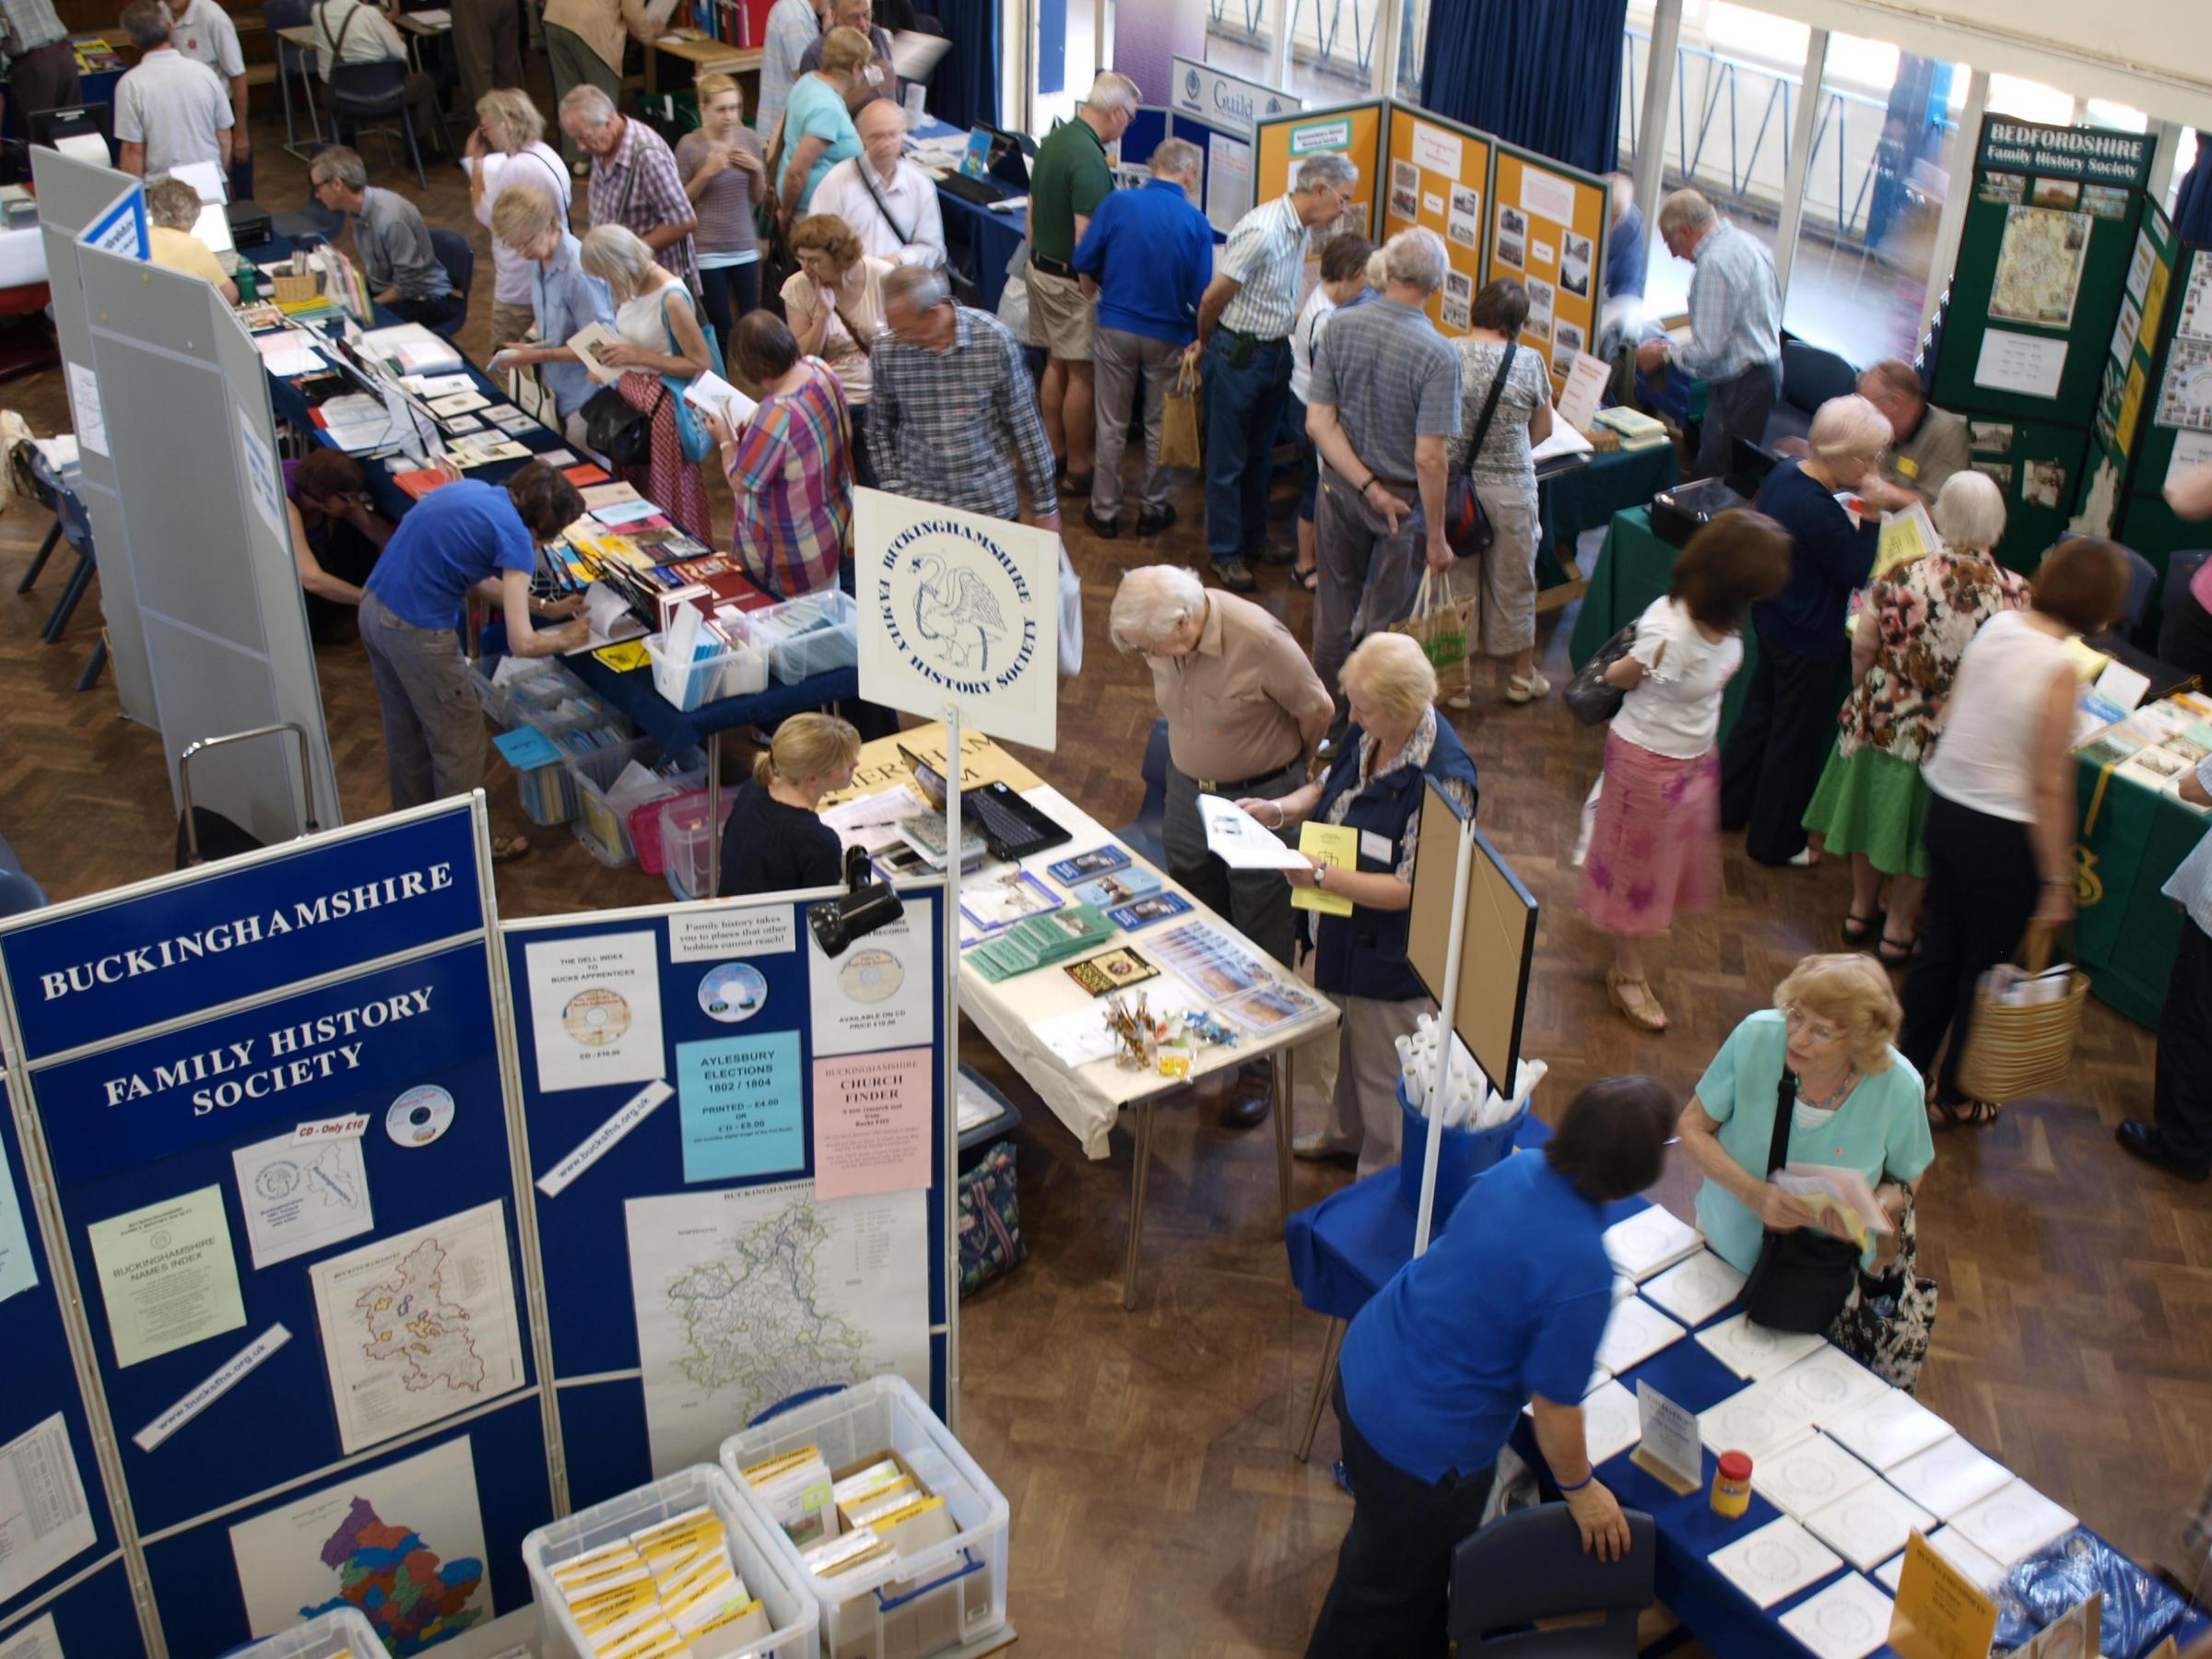 Buckinghamshire Family History Society Open Day